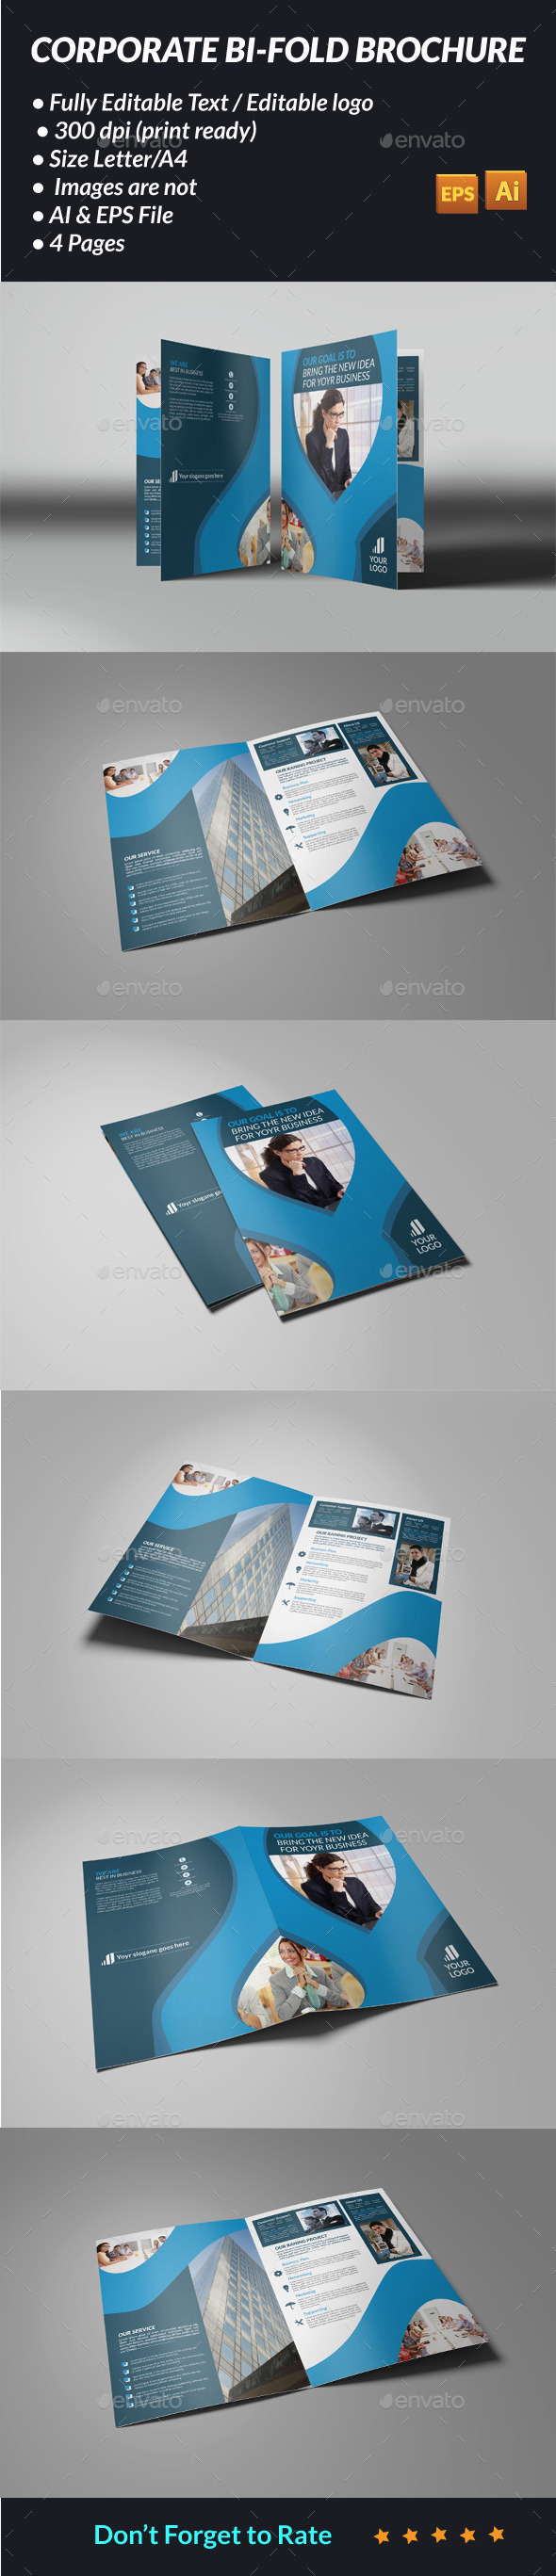 GraphicRiver Corporate Bi-fold Brochure 11947052